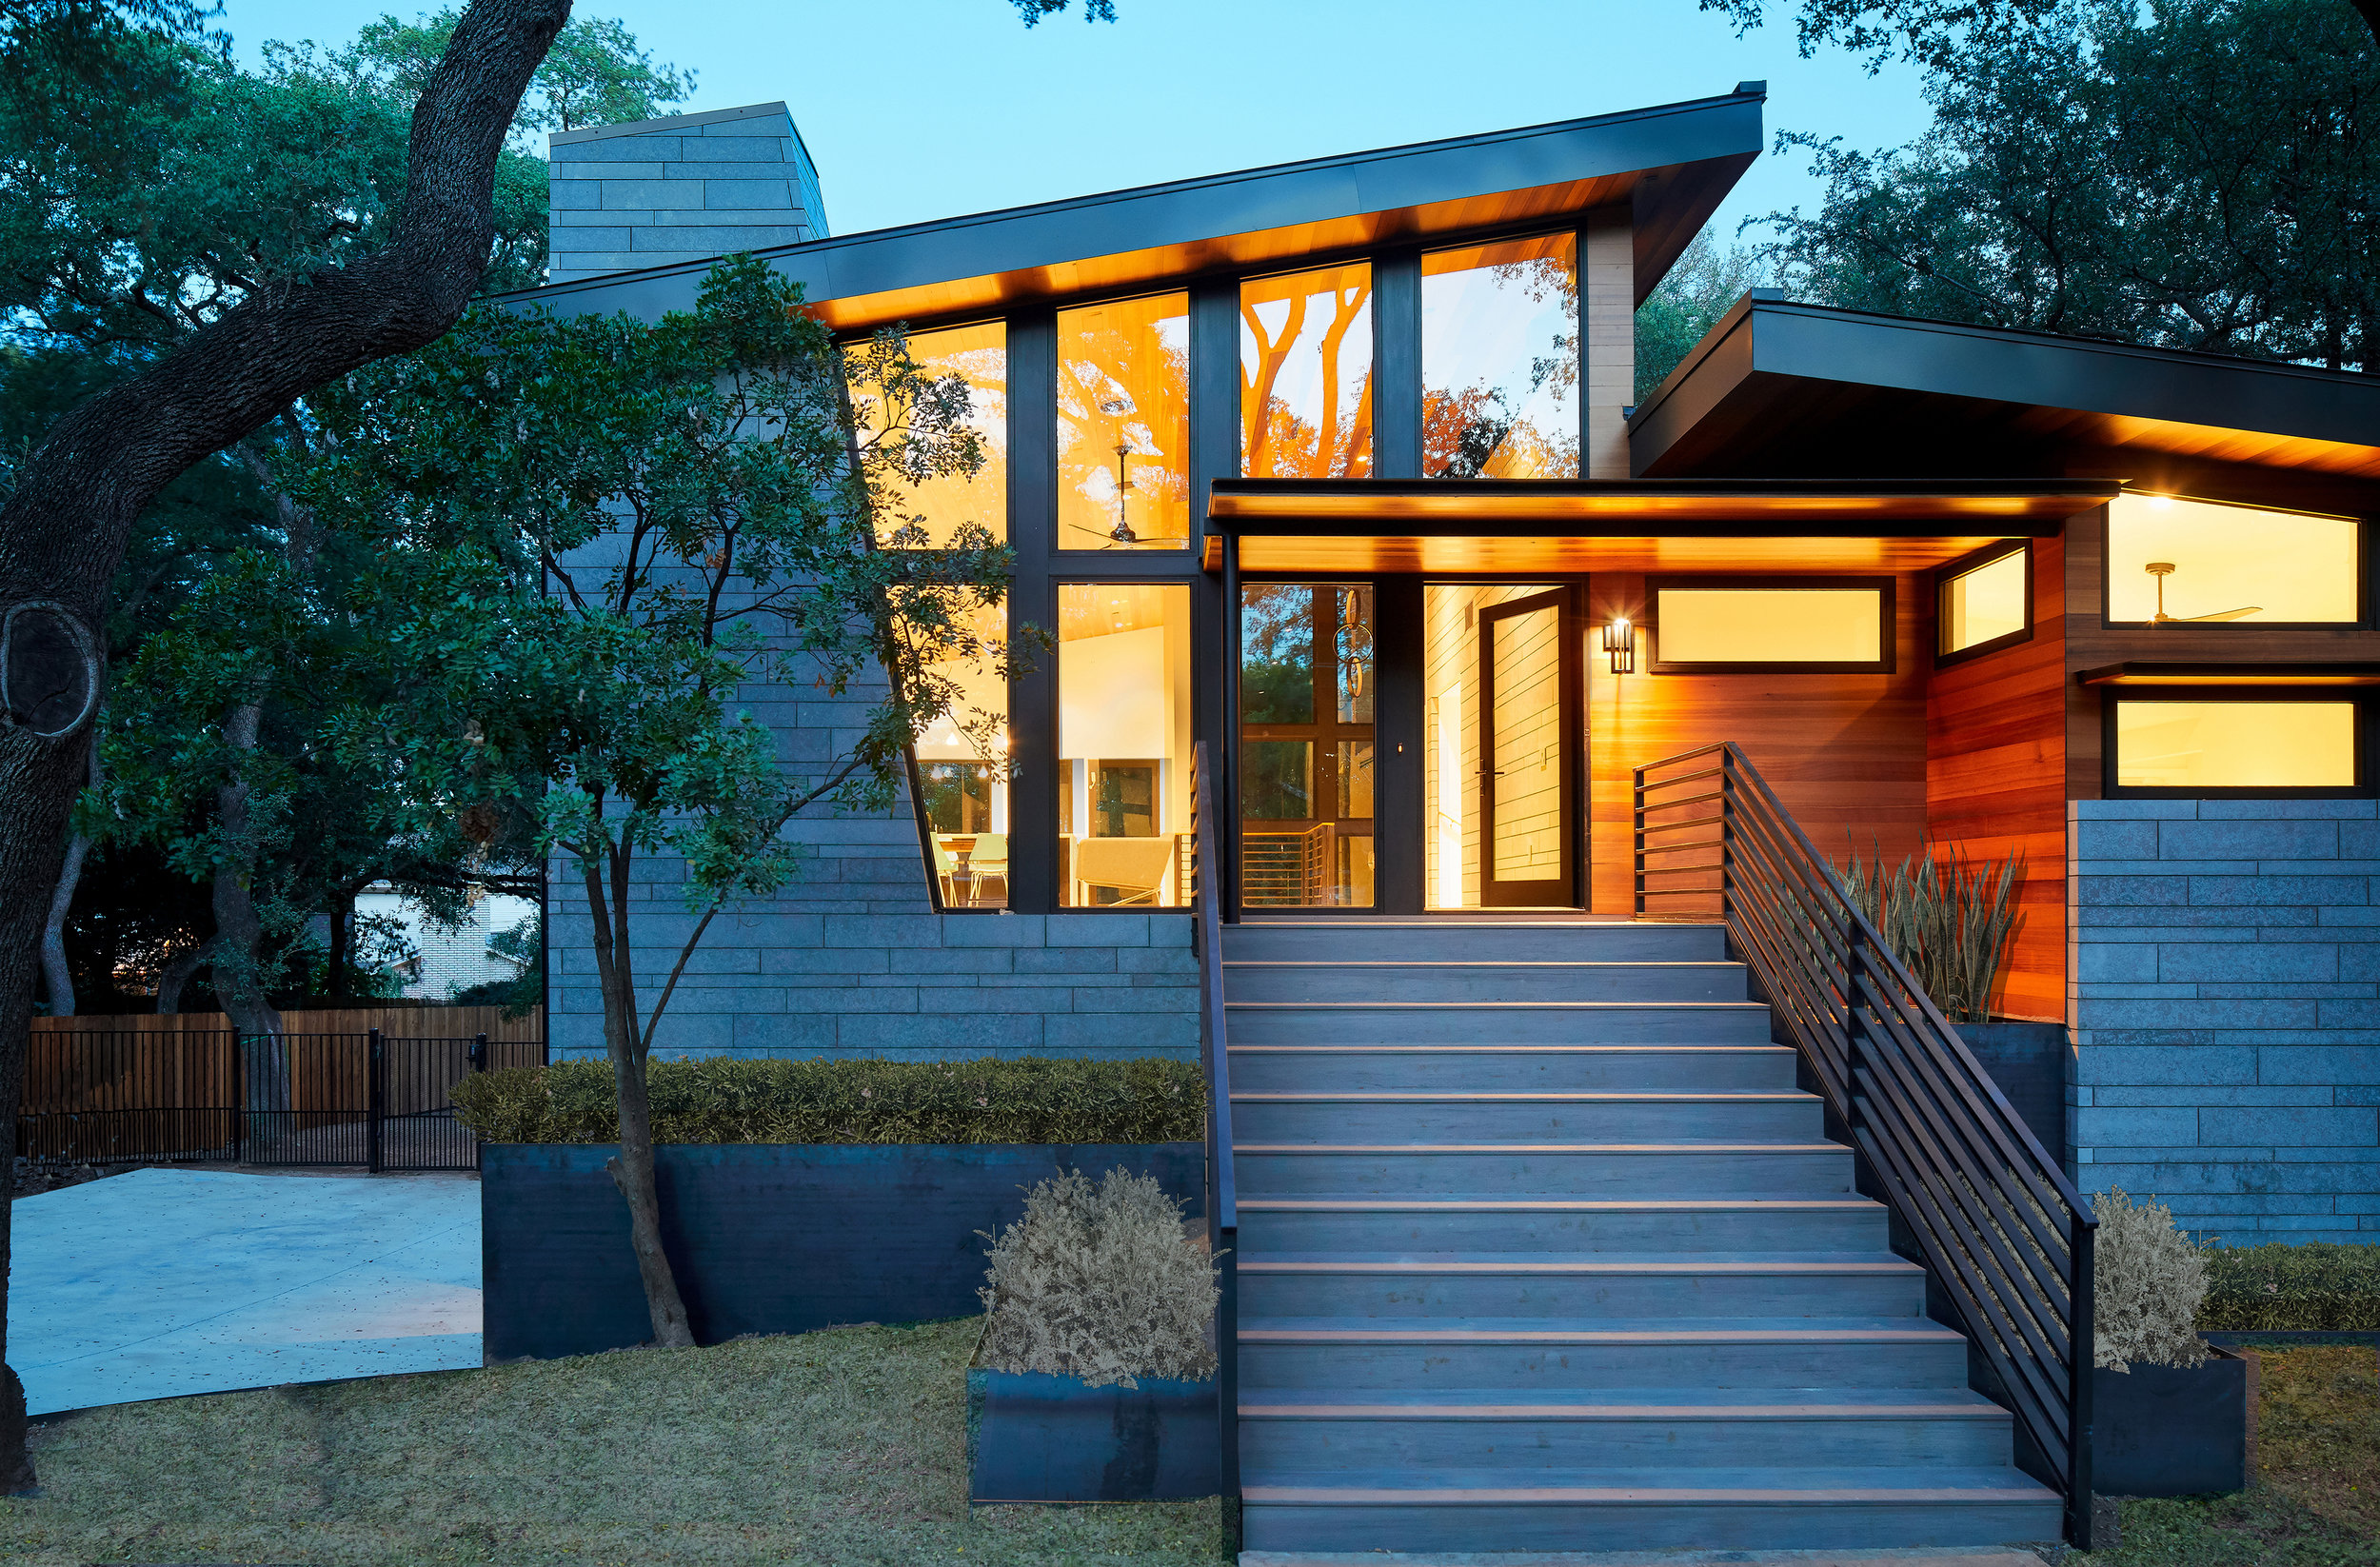 01-Ridgewood Residence by Matt Fajkus Architecture. Photo by Leonid Furmansky.jpg